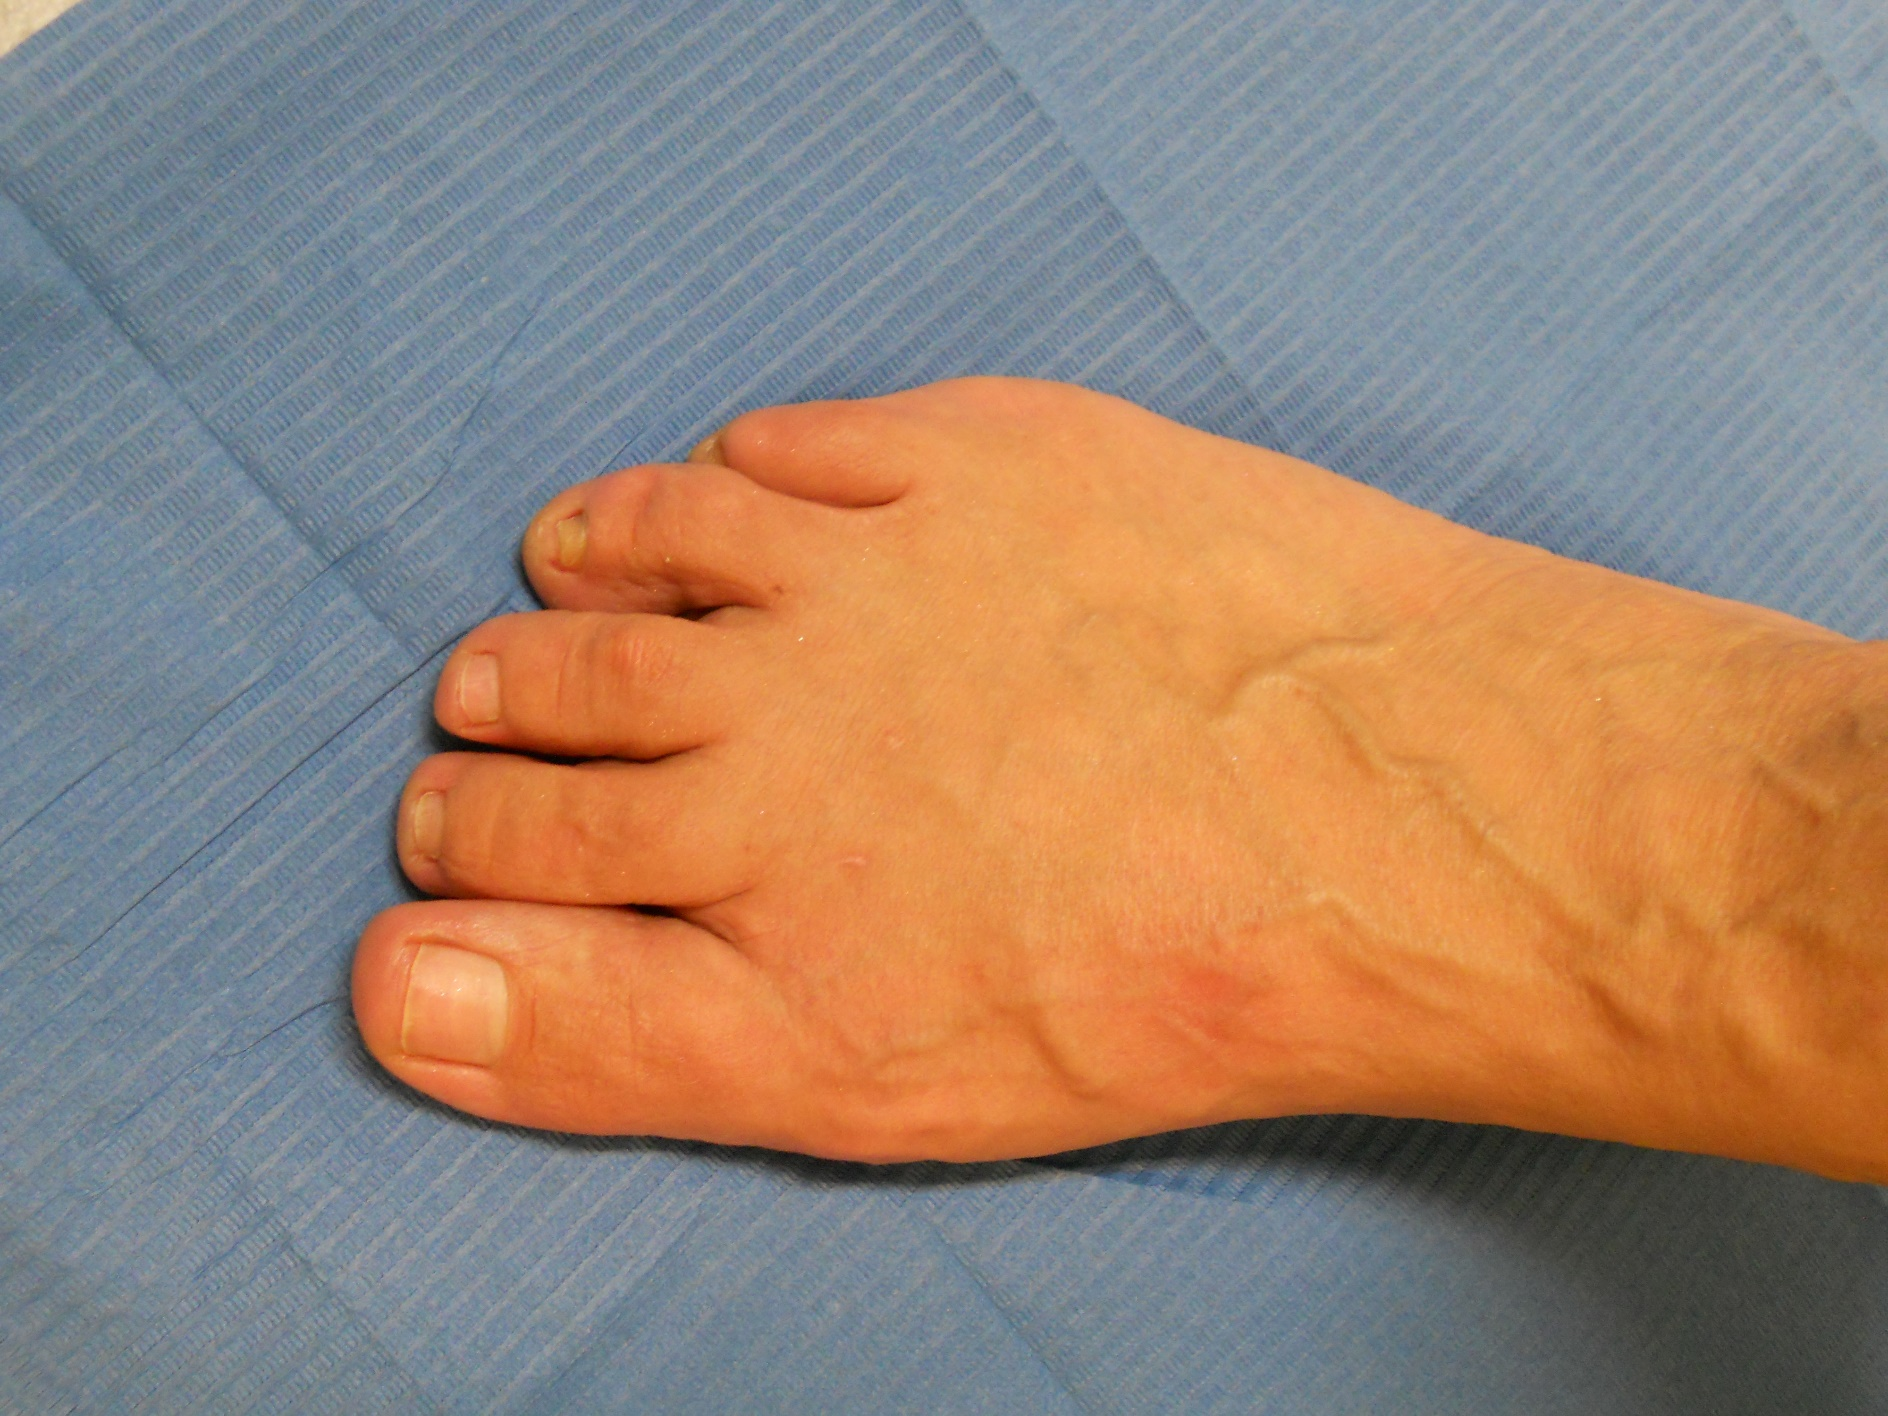 Hallux Valgus: after